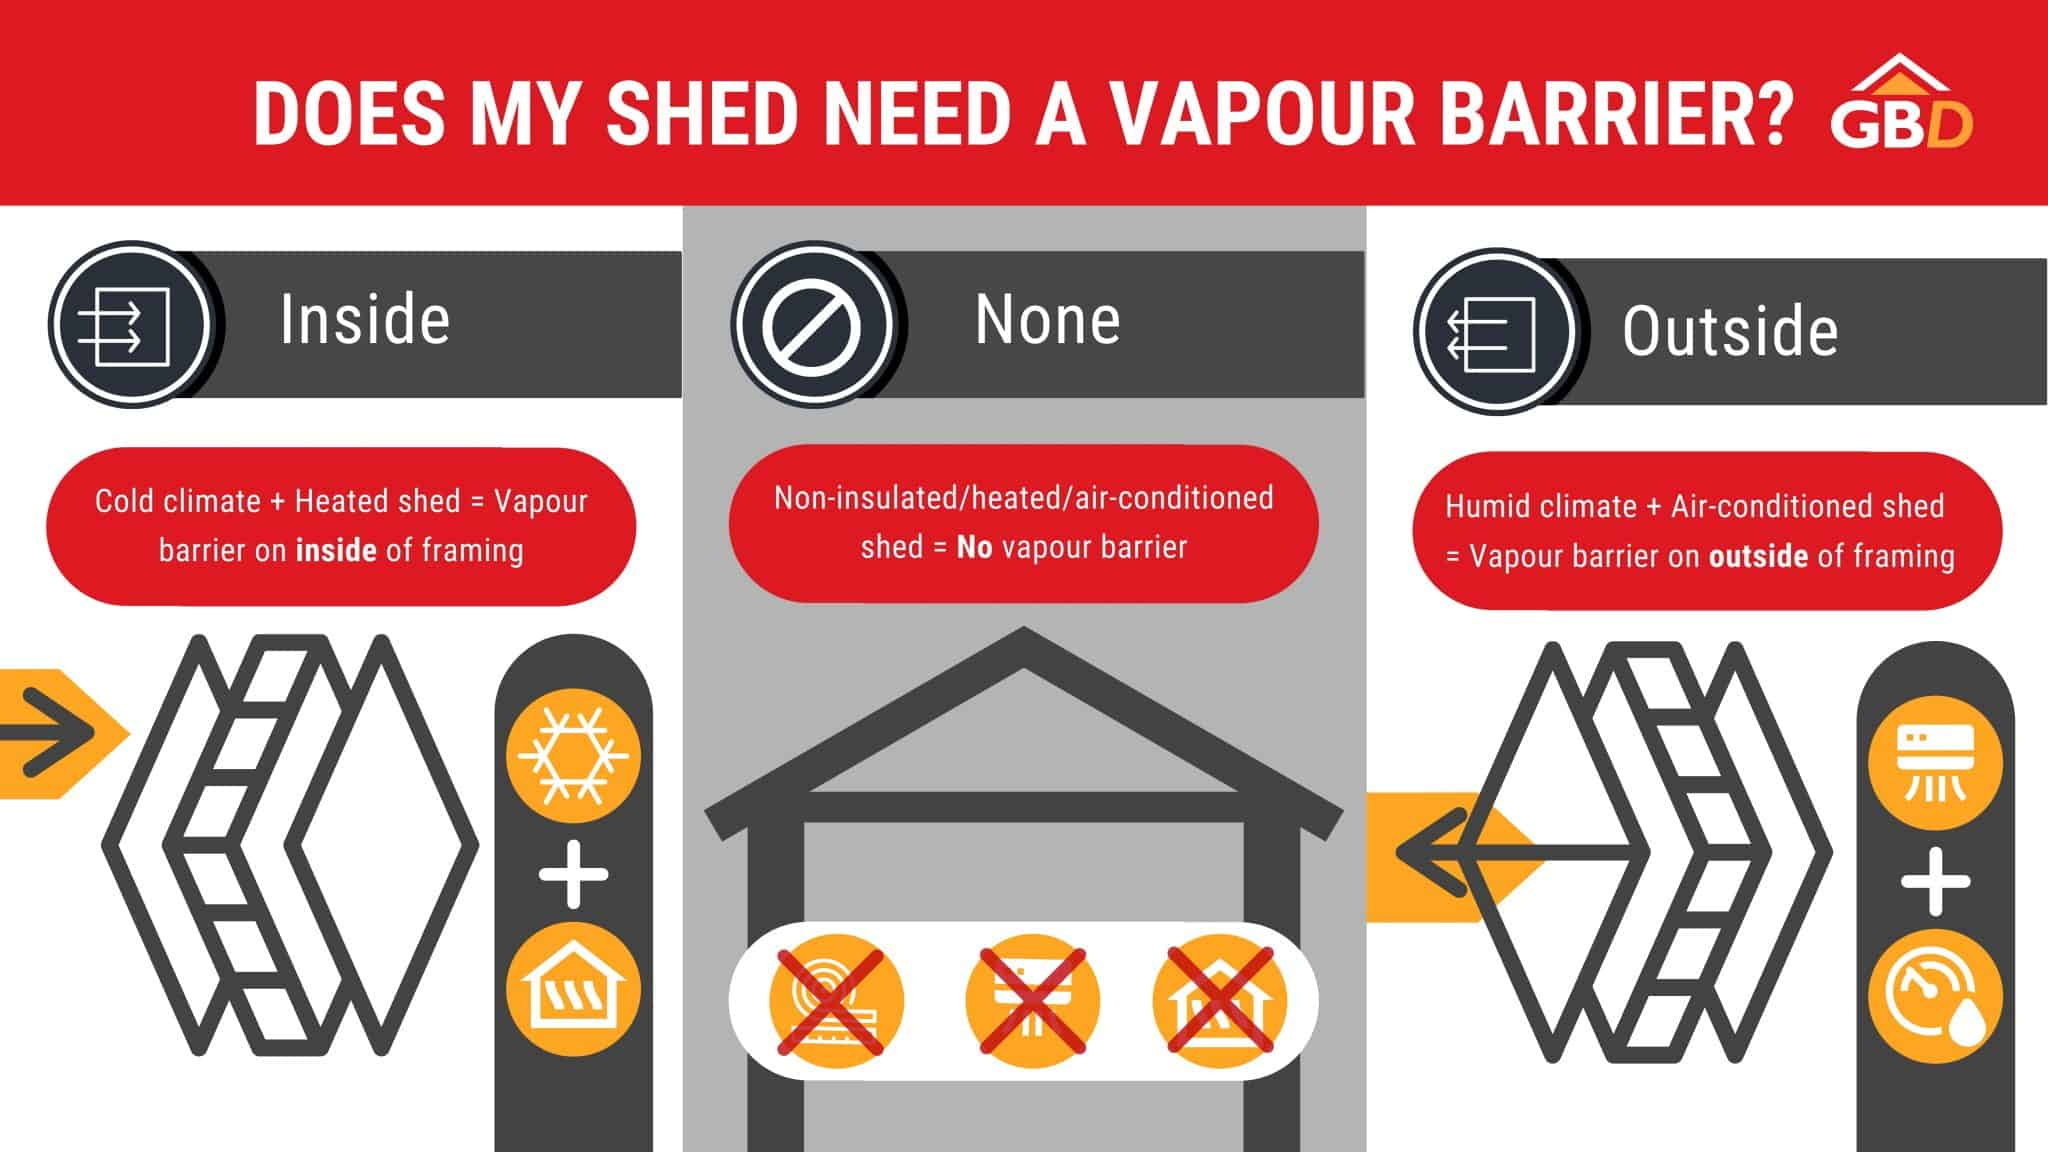 Does my shed need a vapour barrier Garden Buildings Direct infographic with three tiles for different sheds and climates with icons and arrows regarding air flow, insulation, and vapour barriers